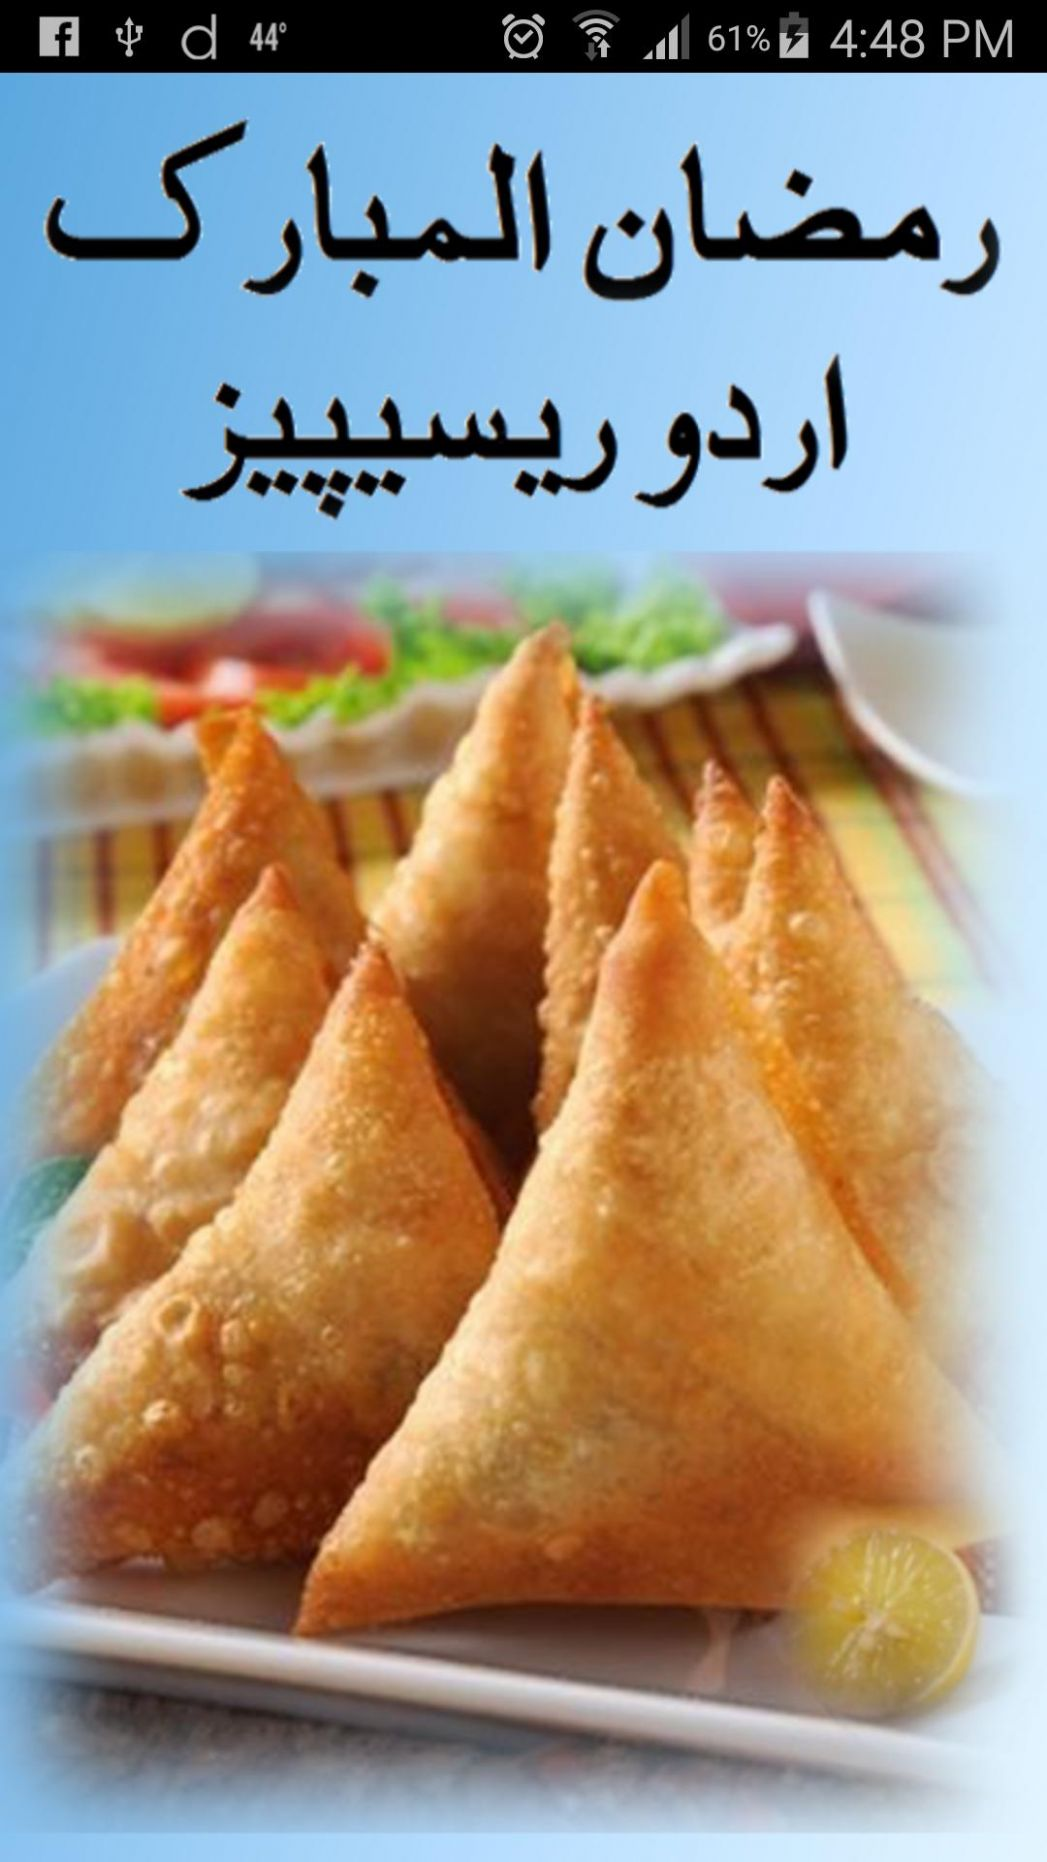 Ramzan Cooking Recipes in Urdu for Android - APK Download